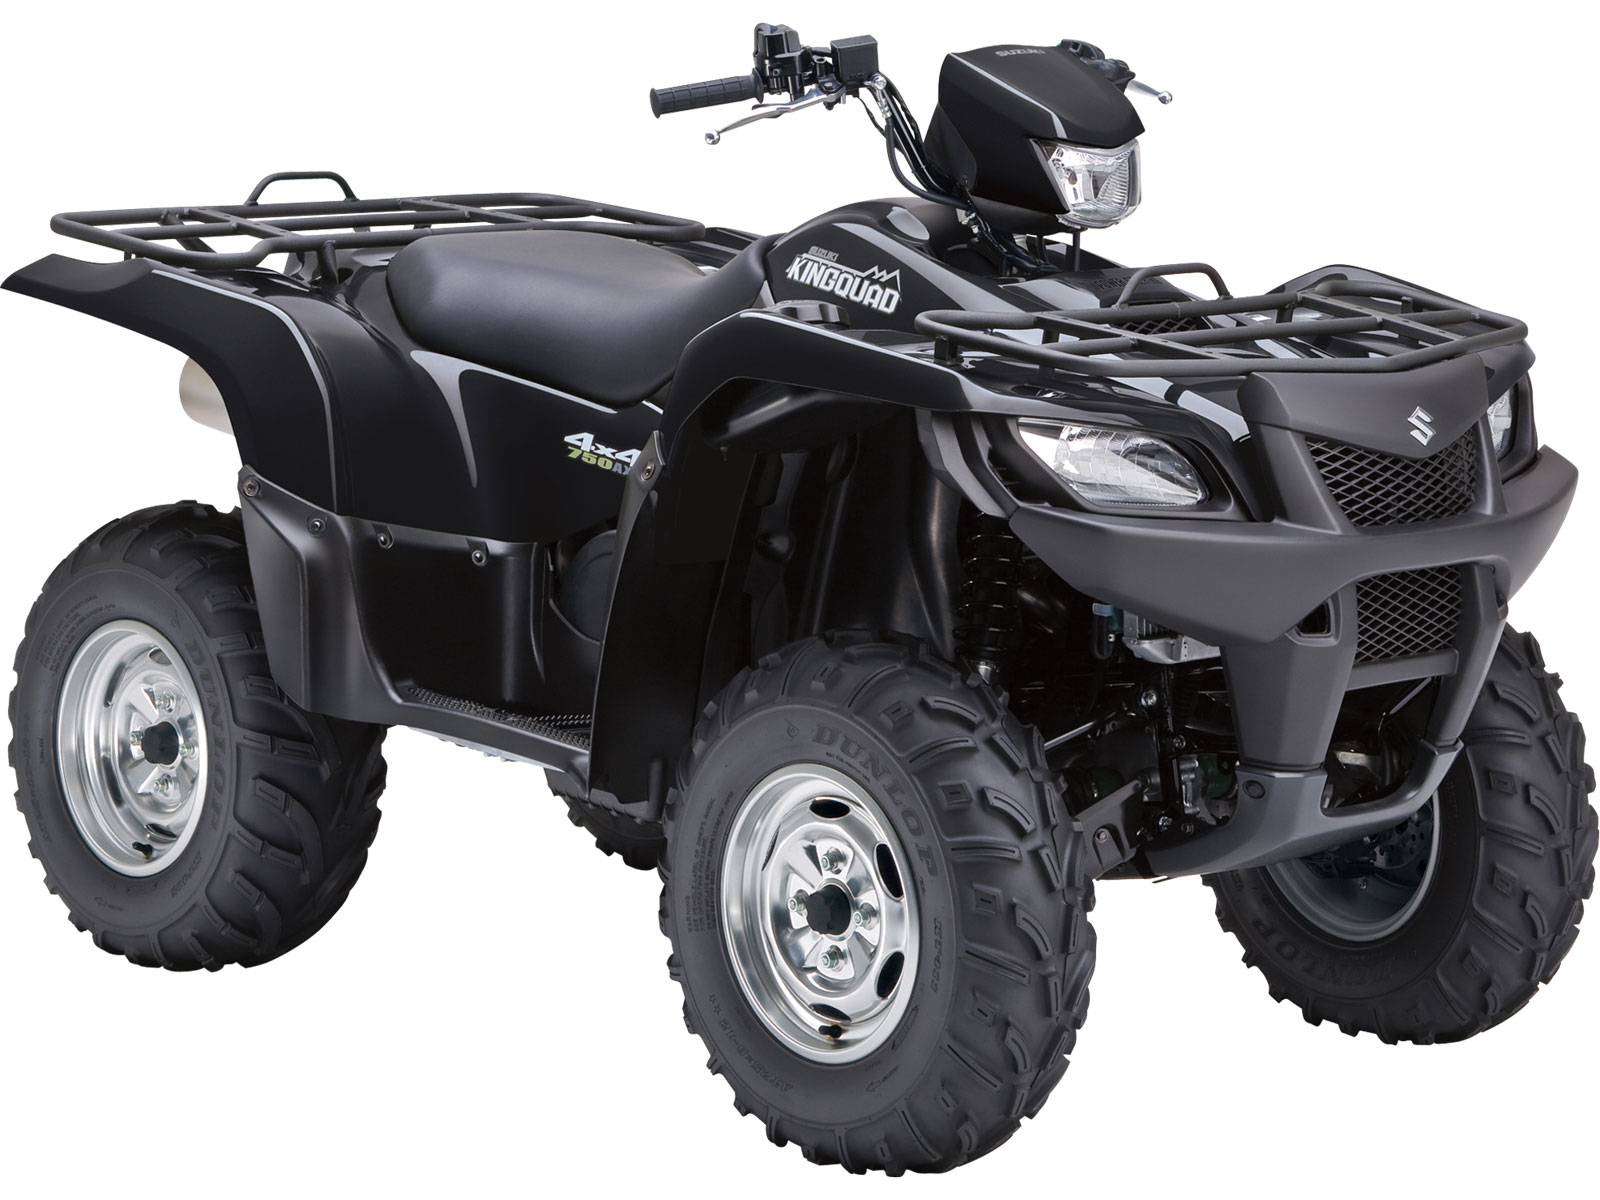 Suzuki Kingquad 750axi Power Steering Specs 2010 2011